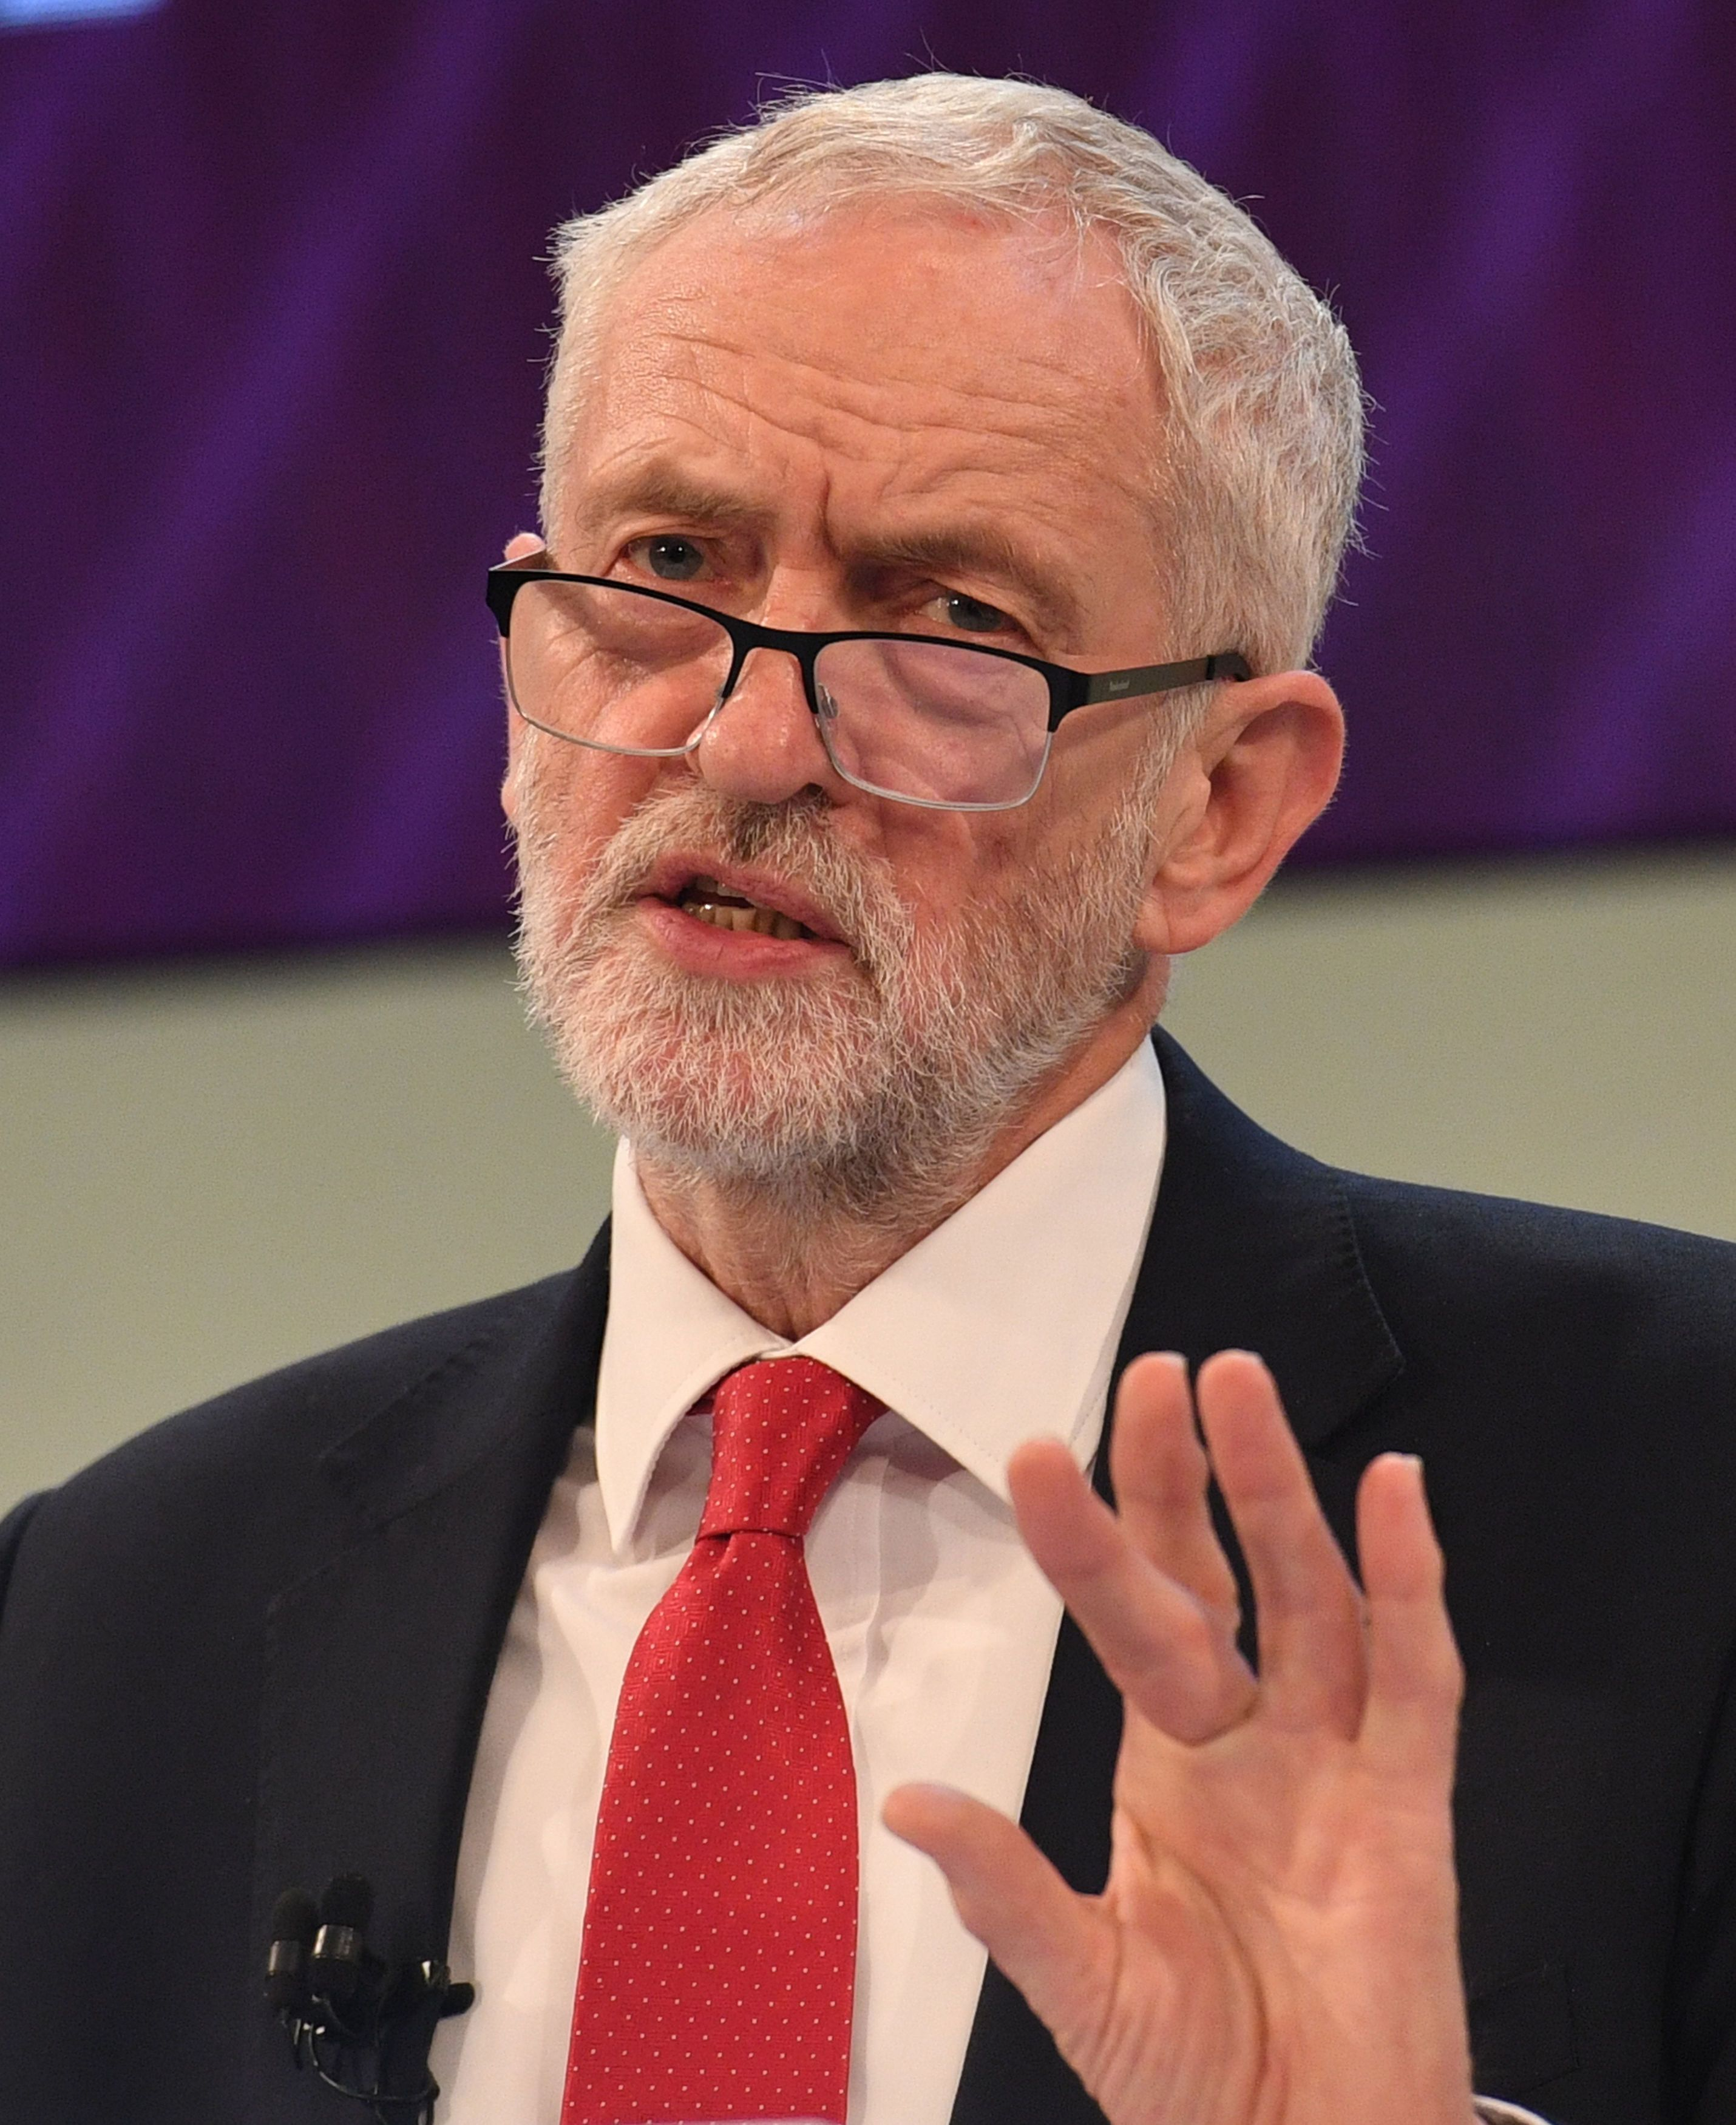 Jeremy Corbyn Calls For MPs To Cut Short Christmas Break So They Can Vote On Brexit